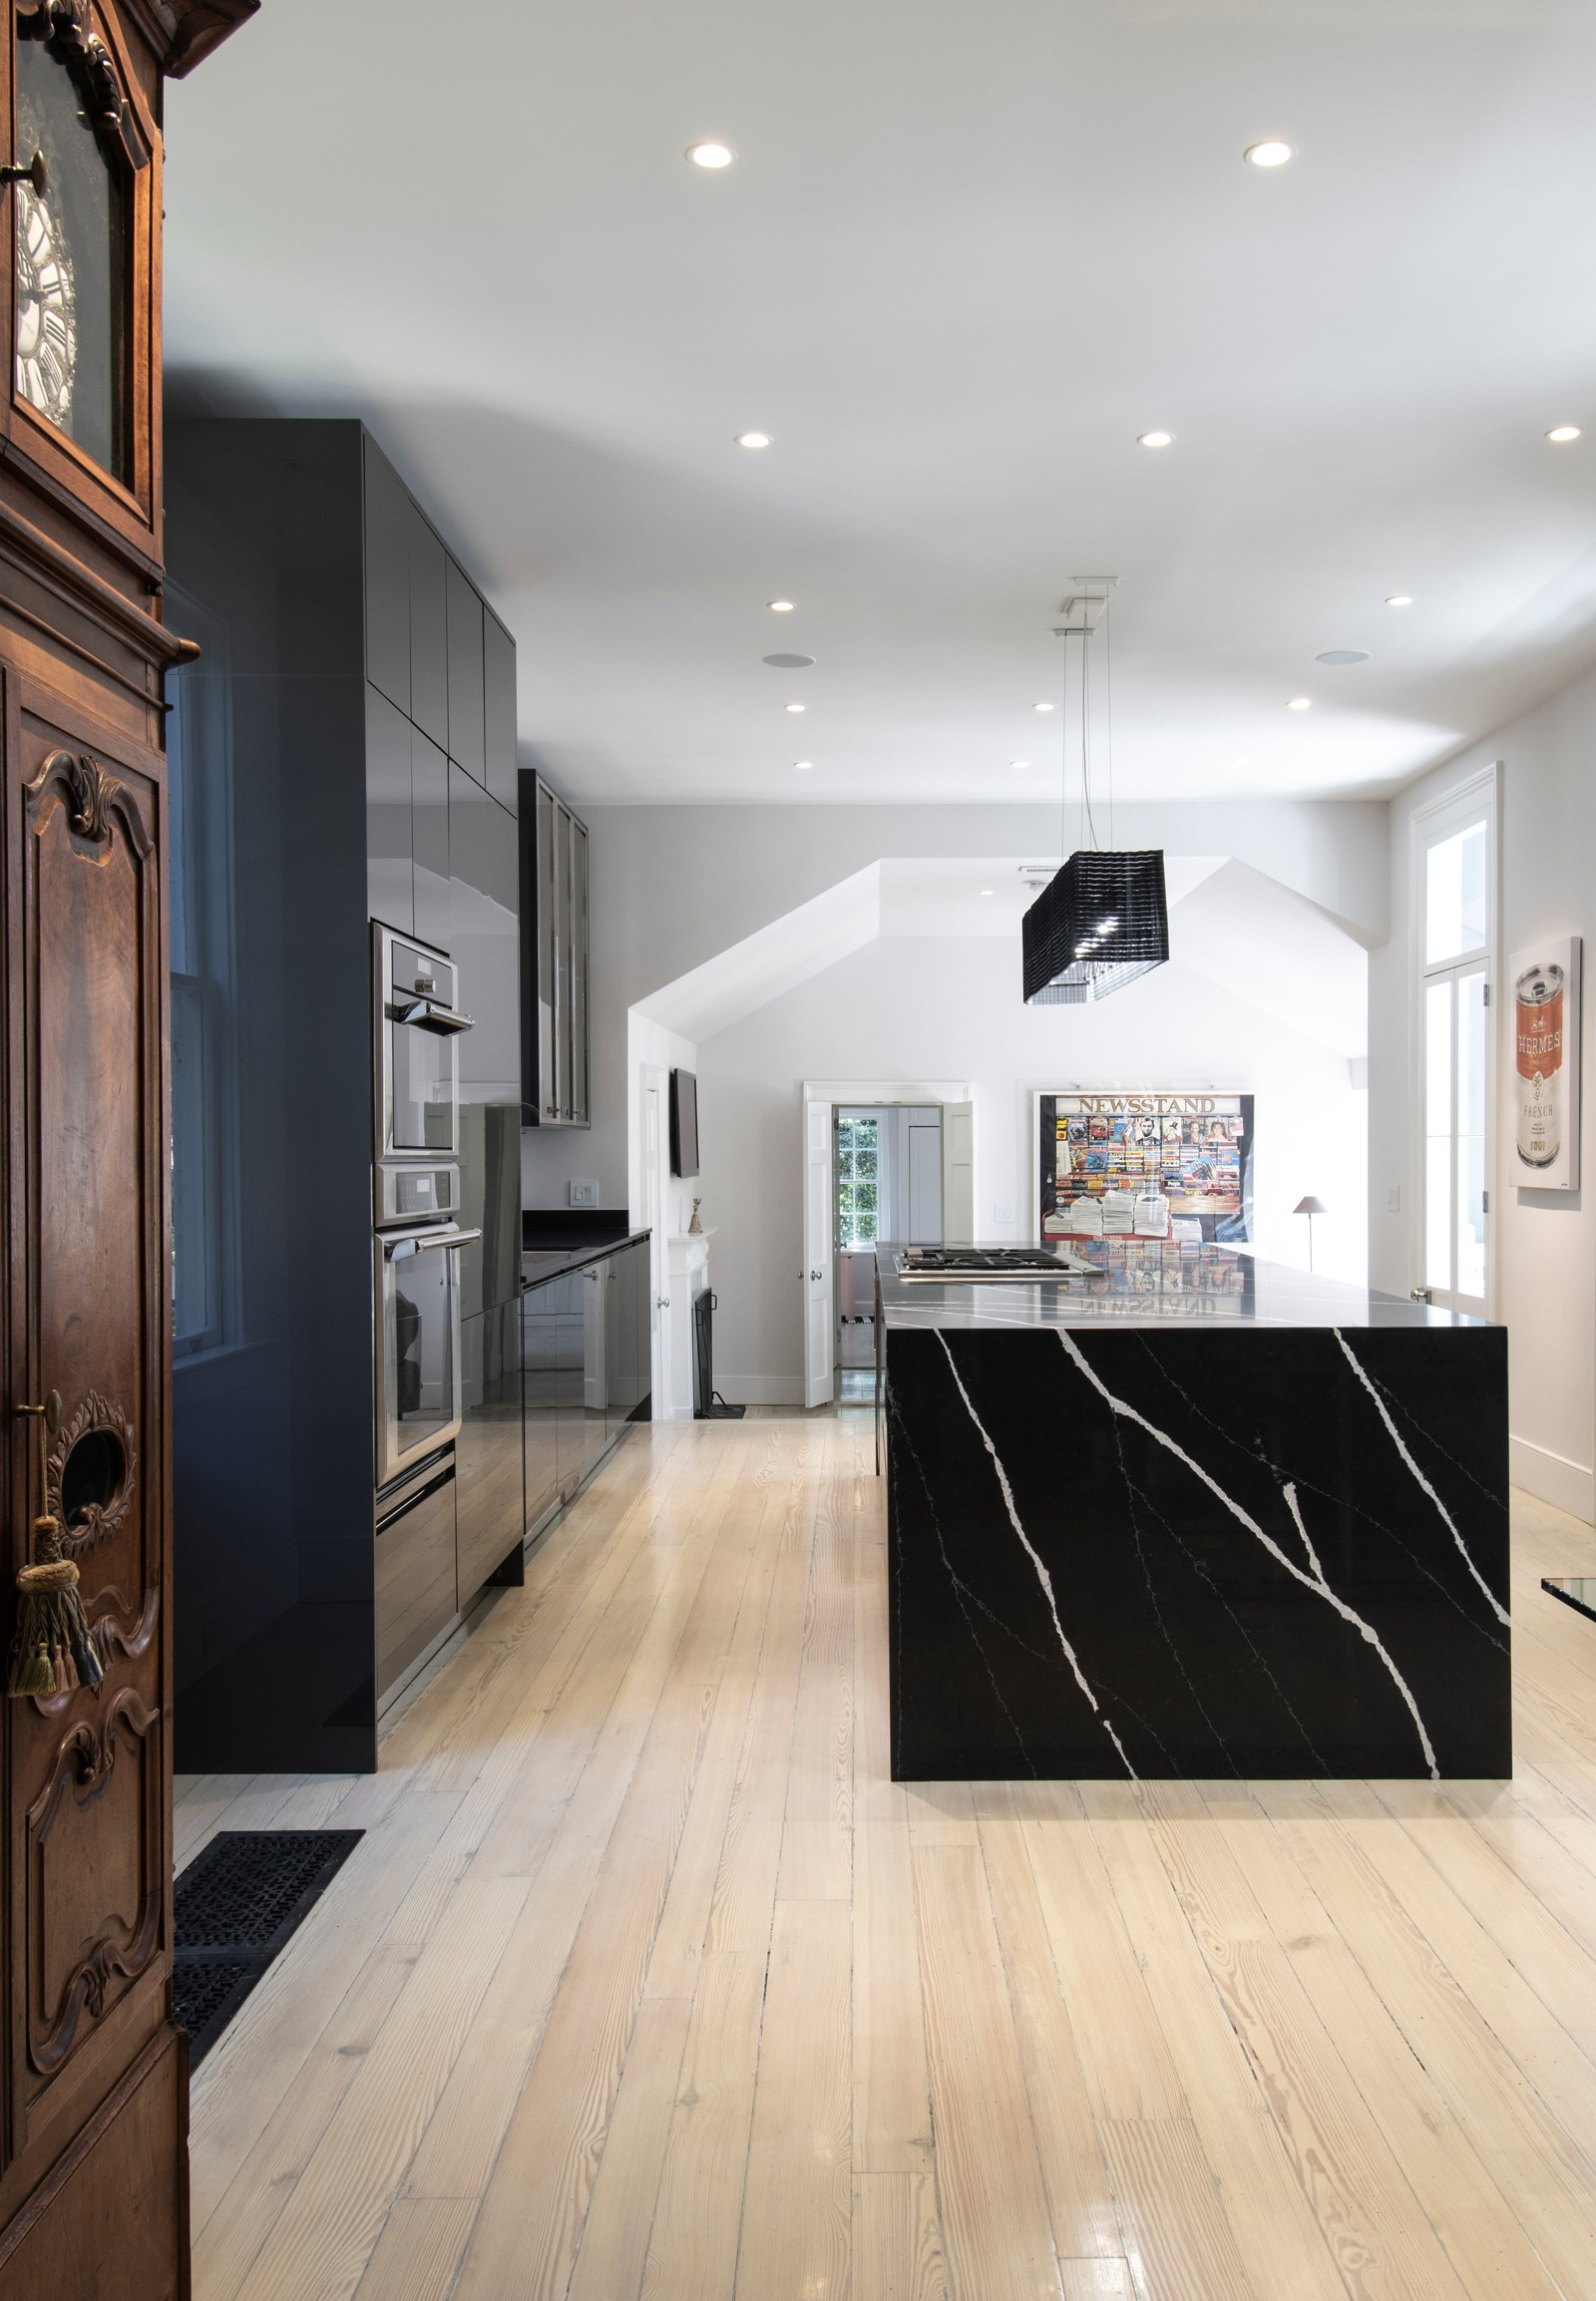 Kitchen Design - Luxury Contract